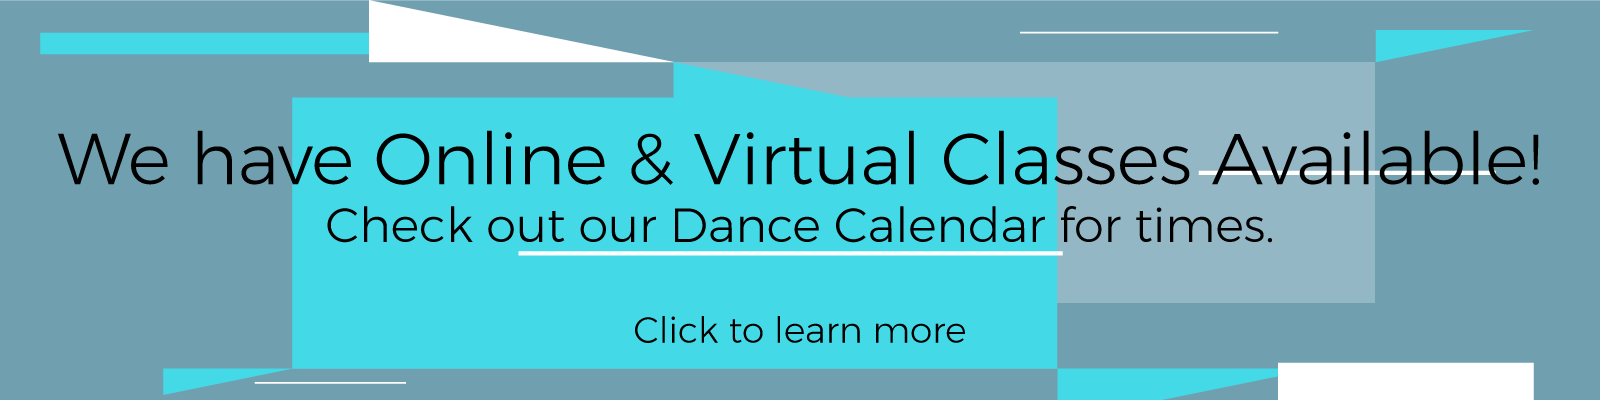 online virtual dance classes